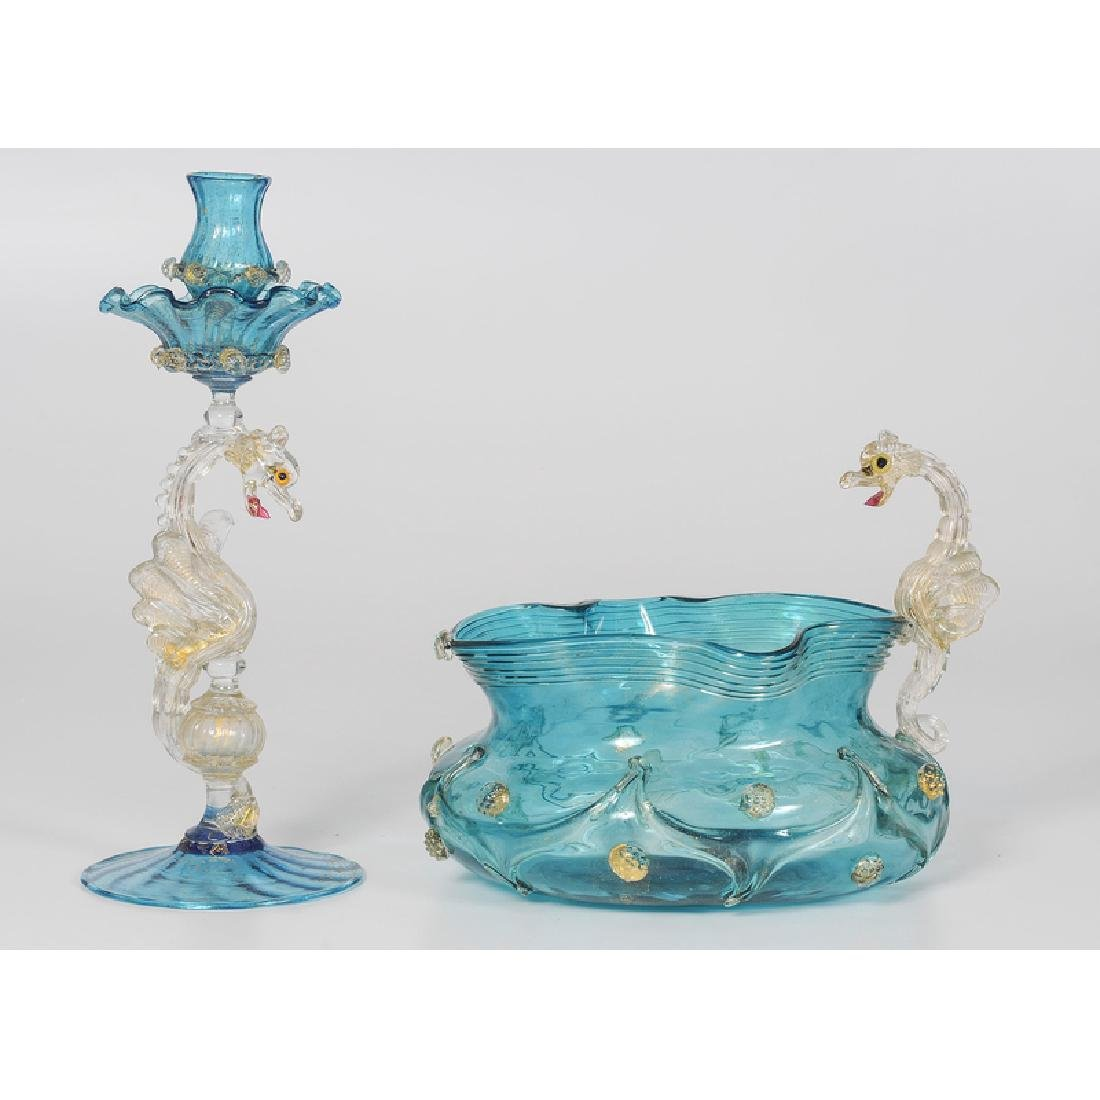 Venetian Glass Candlestick and Bowl